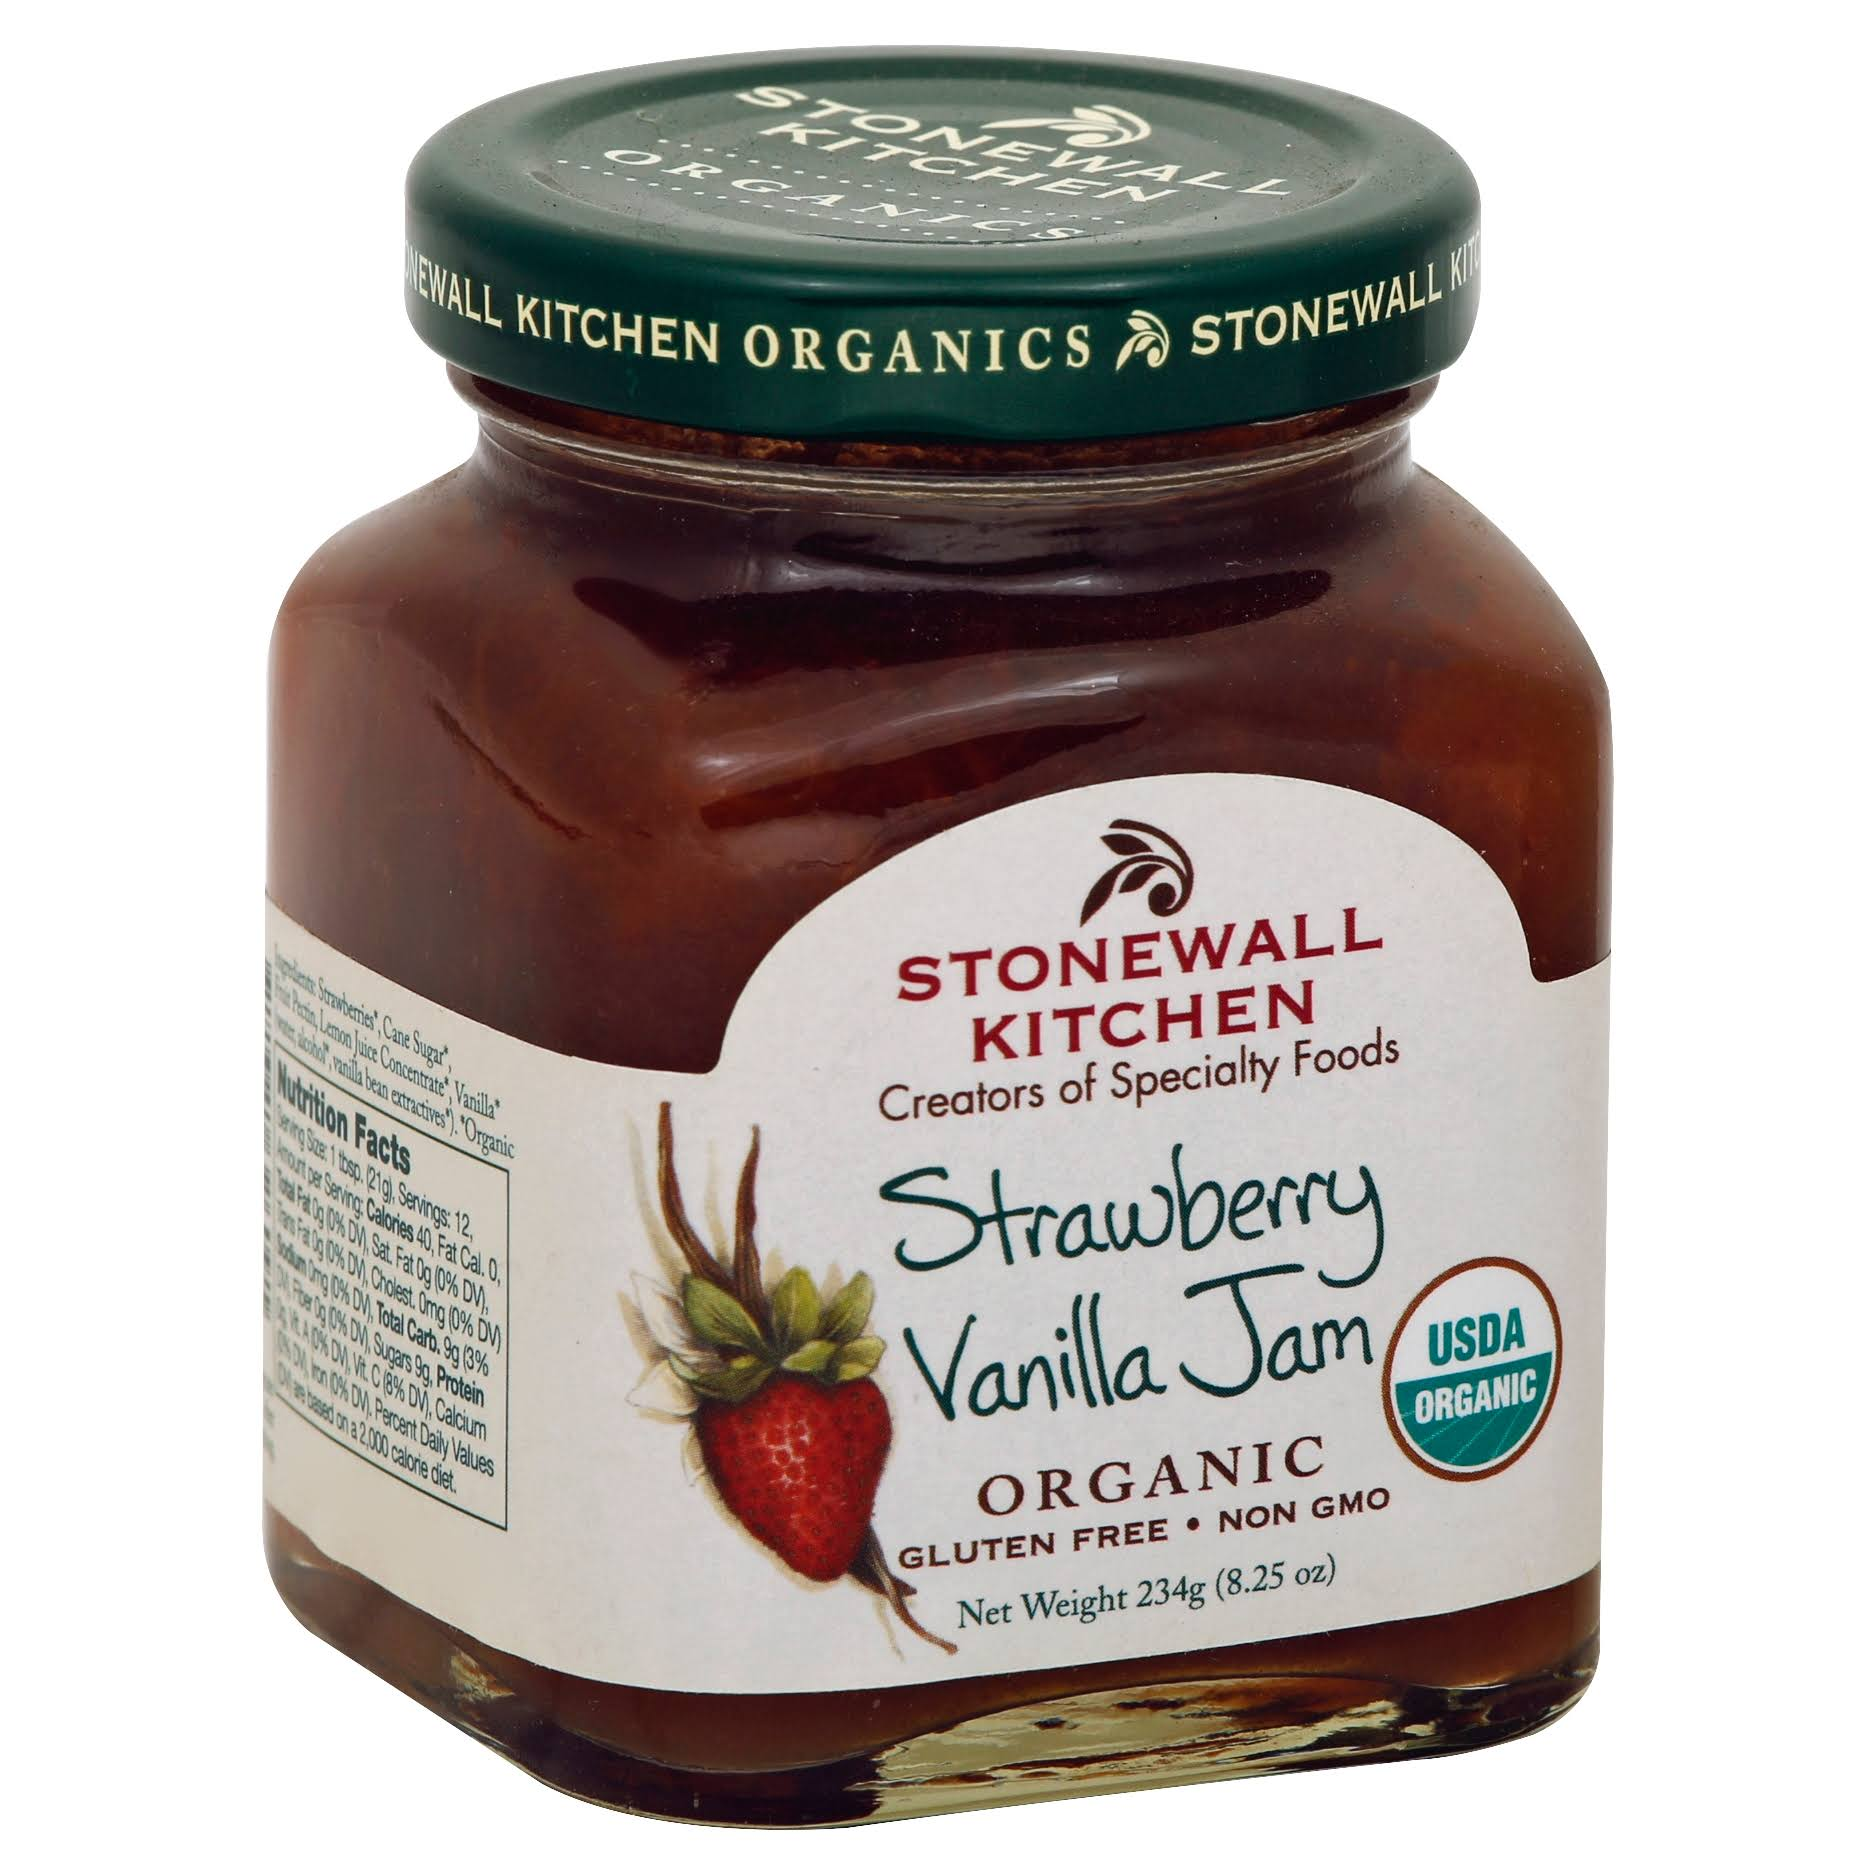 Stonewall Kitchen Organic Gourmet Jam - Strawberry Vanilla, 8.25oz